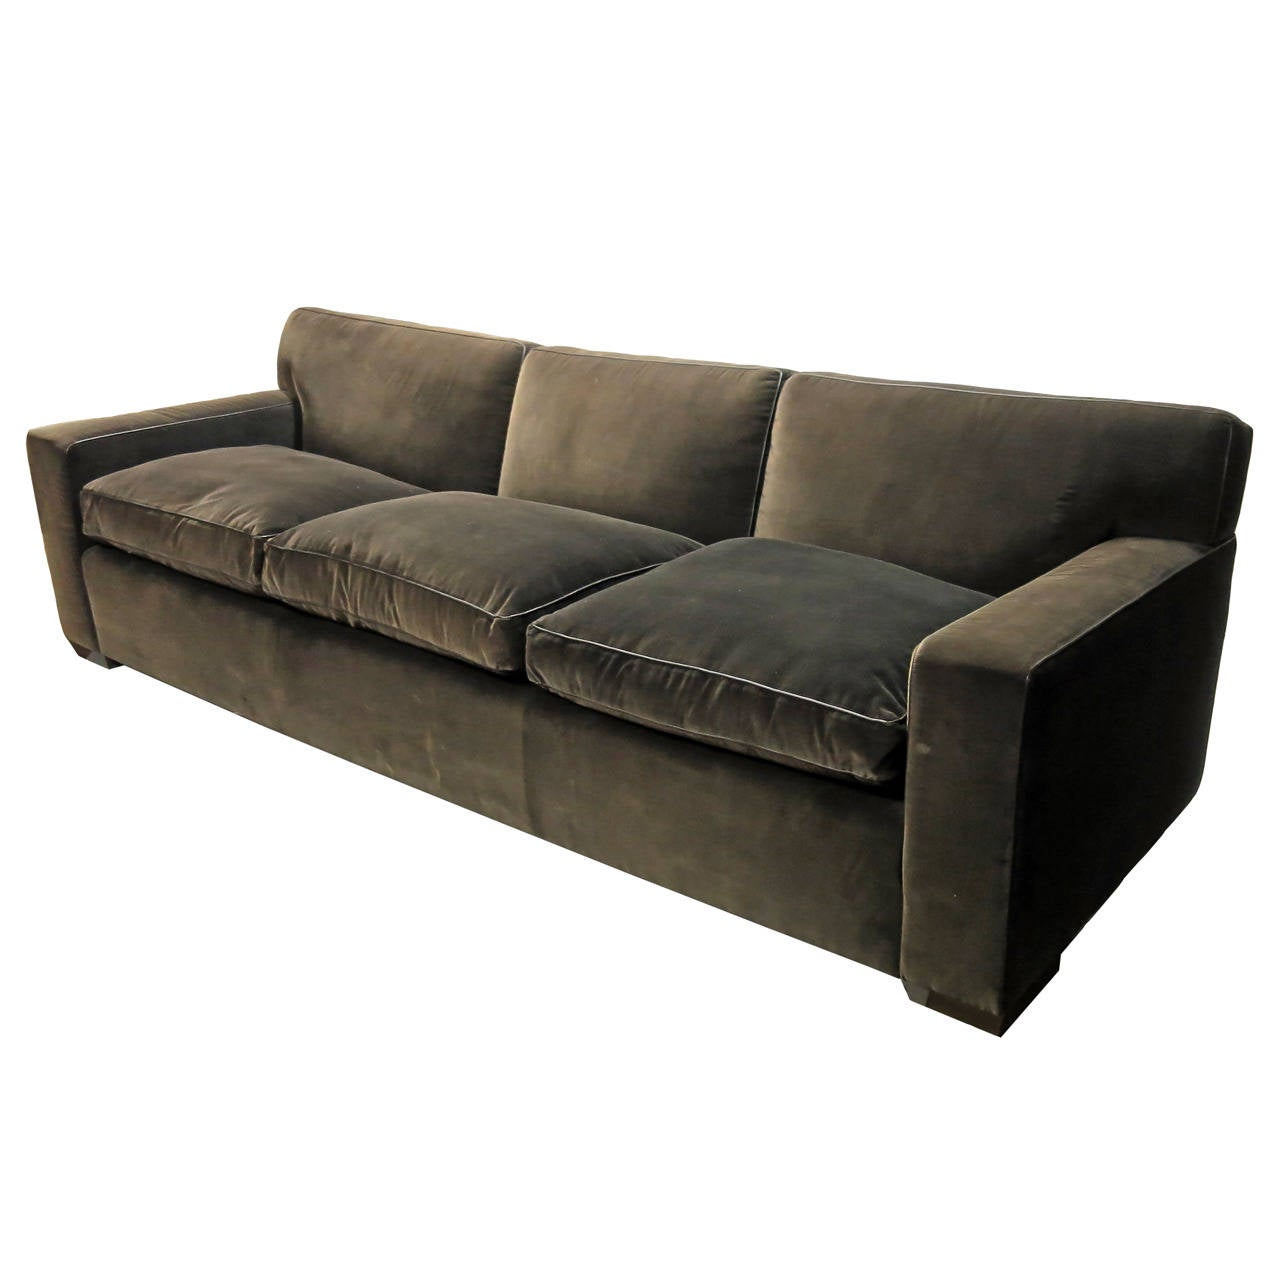 What Is Velvet Made Of Custom Made Sofa In Brown Velvet Made 1990 By Jonas Nyc At